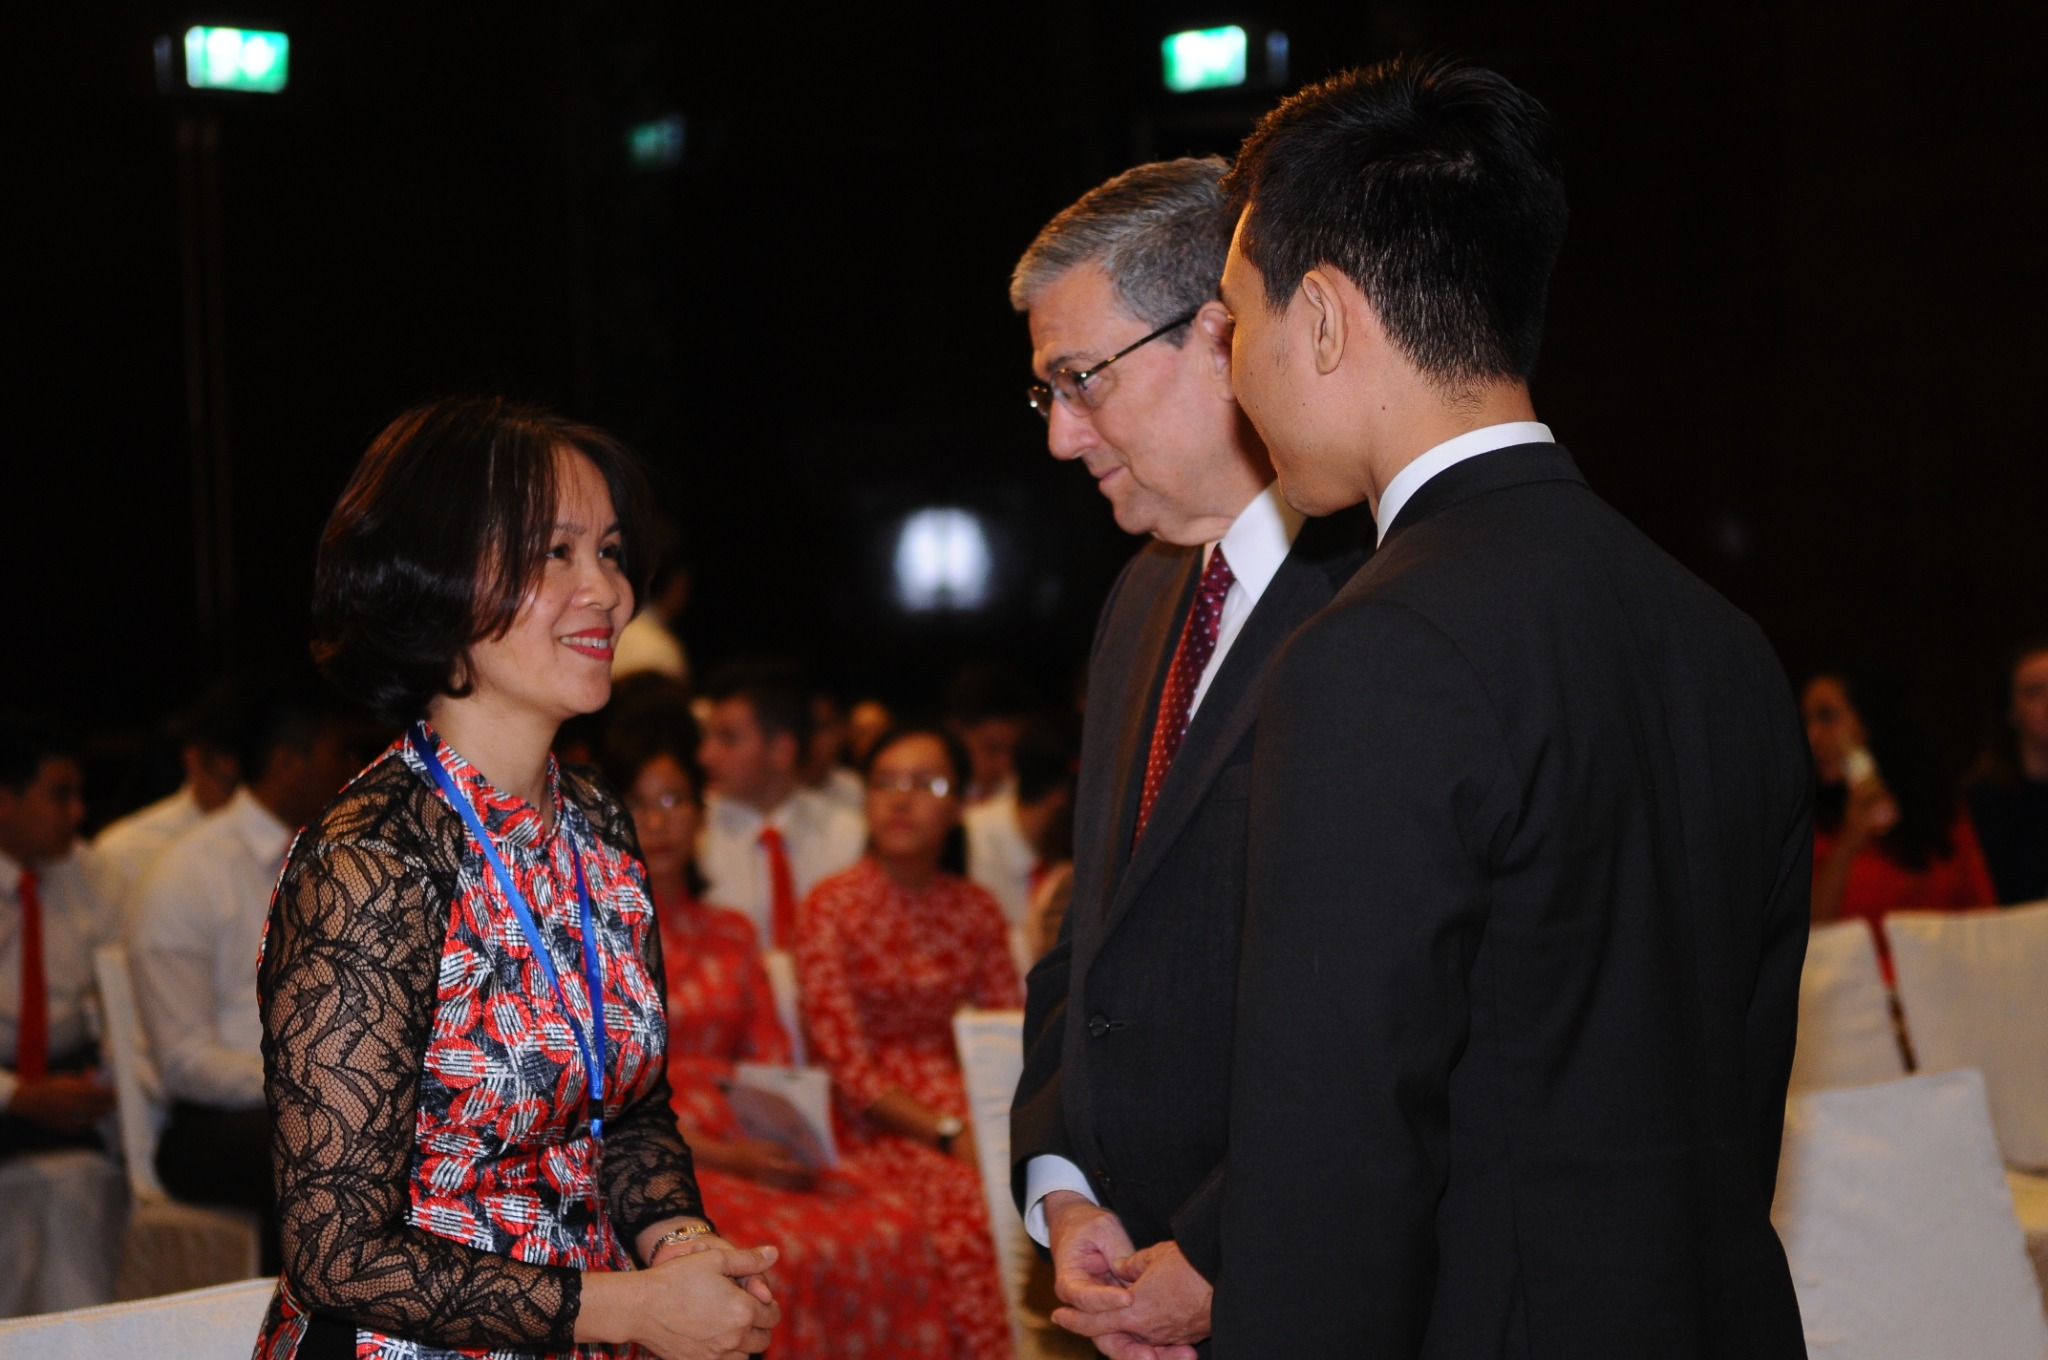 Asia Area President Elder David F. Evans and Madam Thieu Thi Huong of Vietnam CRA exchange greetings prior to the recognition ceremony in Hanoi, Vietnam, on Nov. 14, 2019.